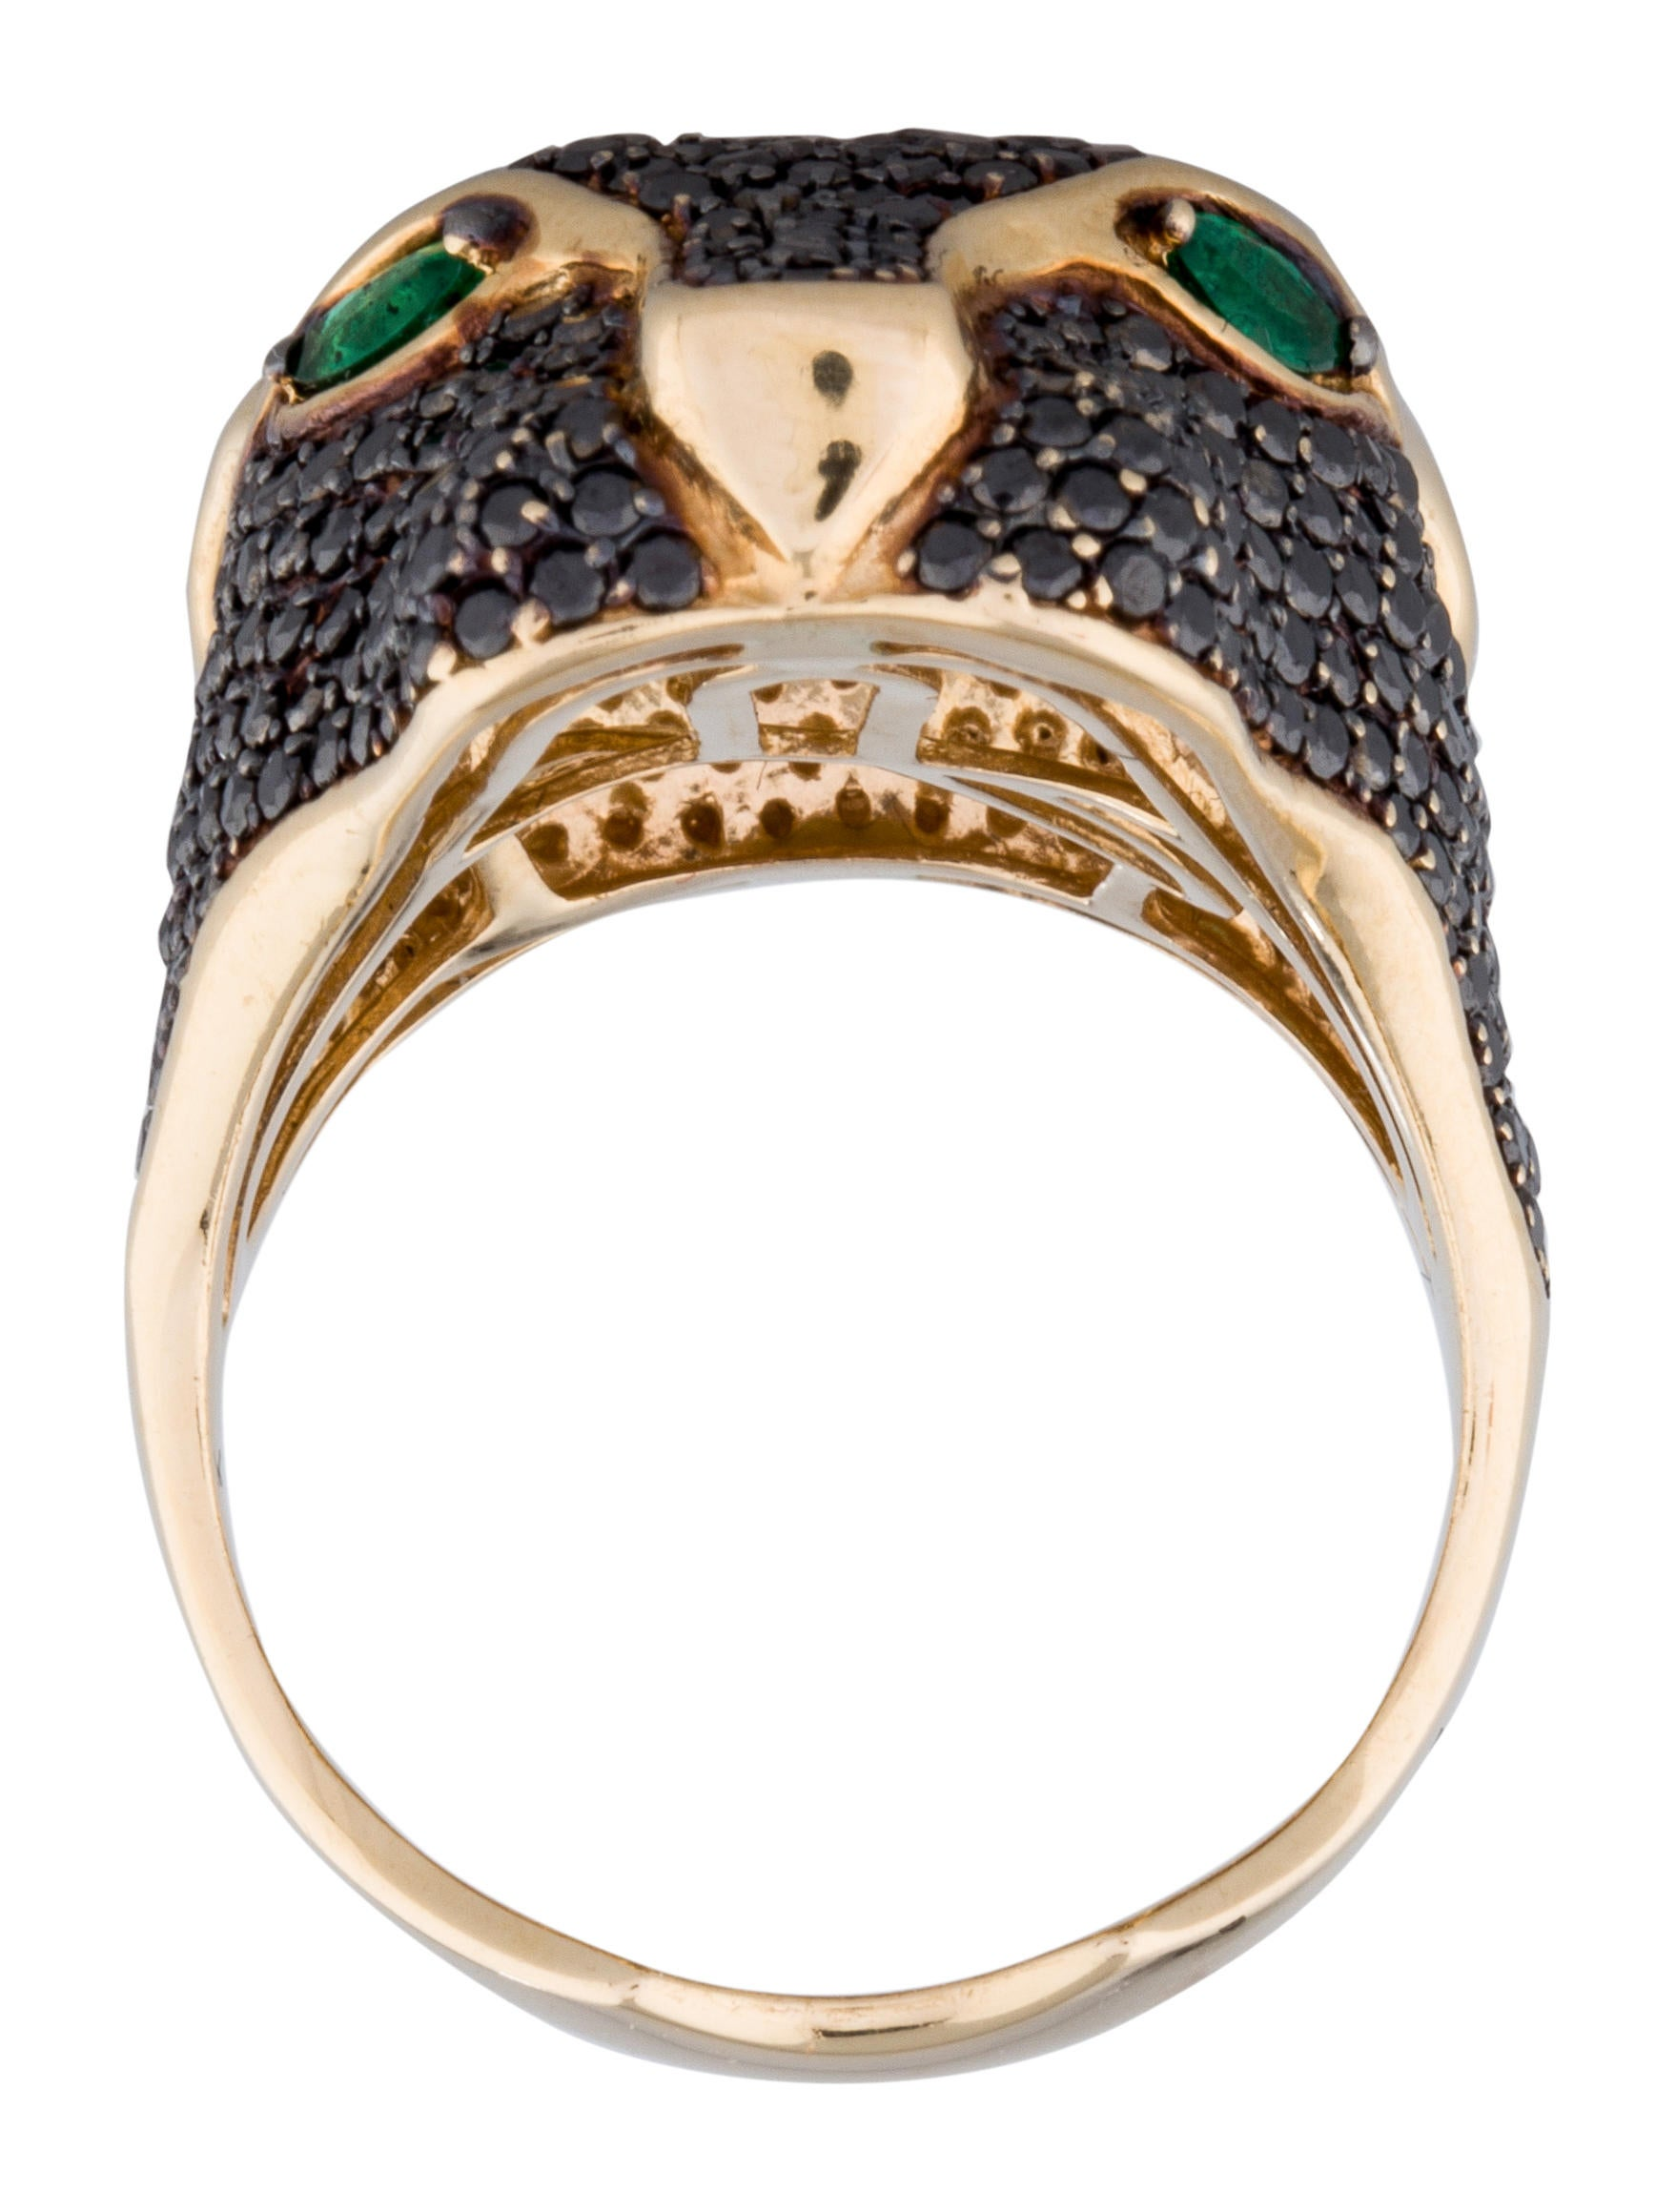 Effy Jewelry Panther Ring Rings Eff20020 The Realreal